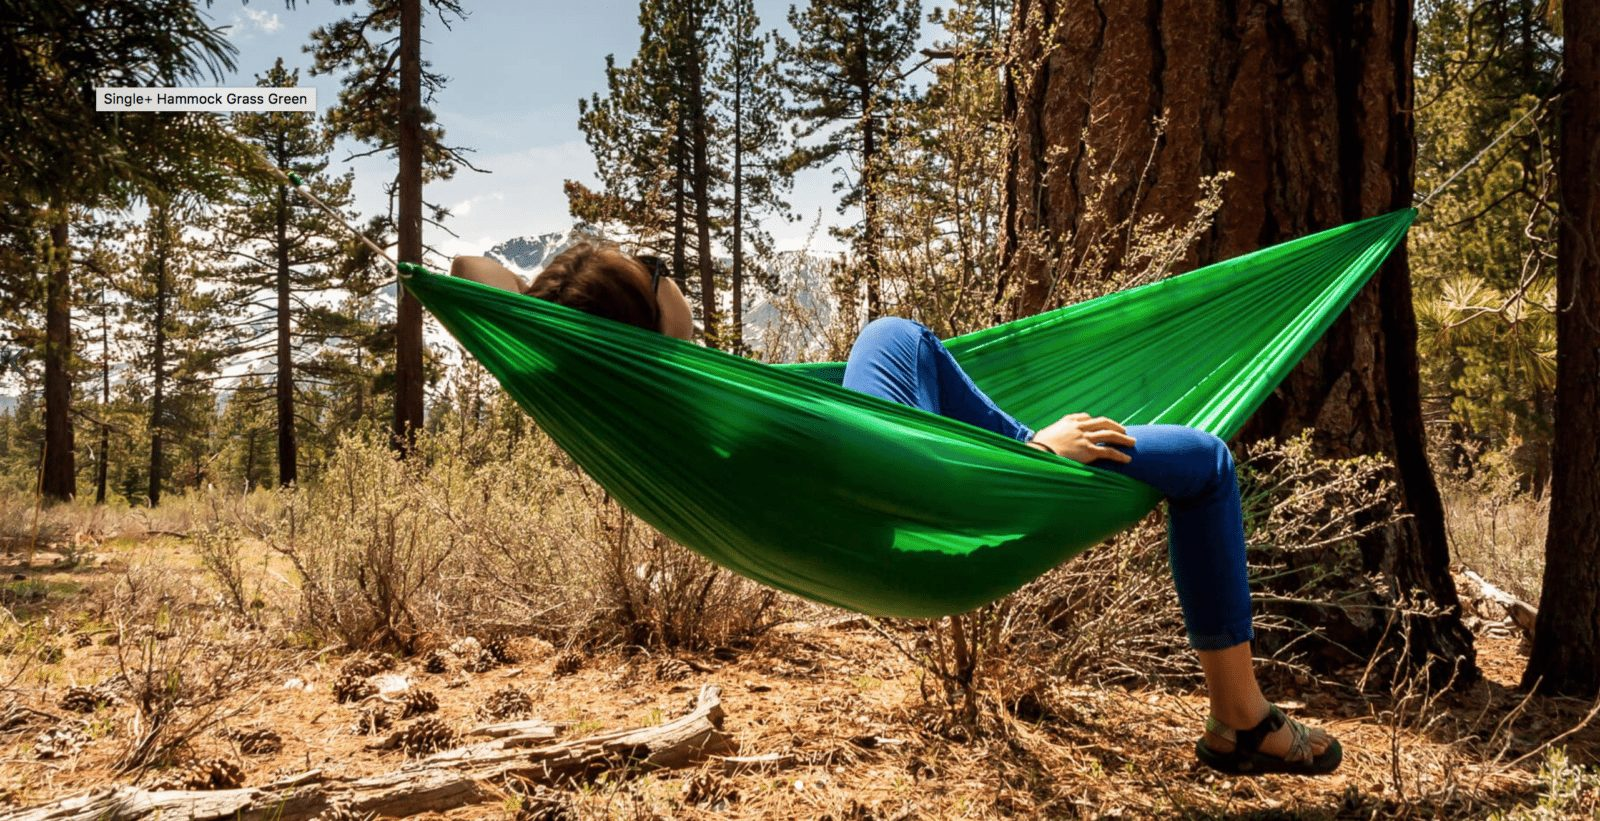 weighing 30  less than any other hammock on the market the hummingbird hammocks ultralight single plus hammock can fit in the palm of your hand when it     56 awesome gifts for travelers  rh   the cheekytraveler